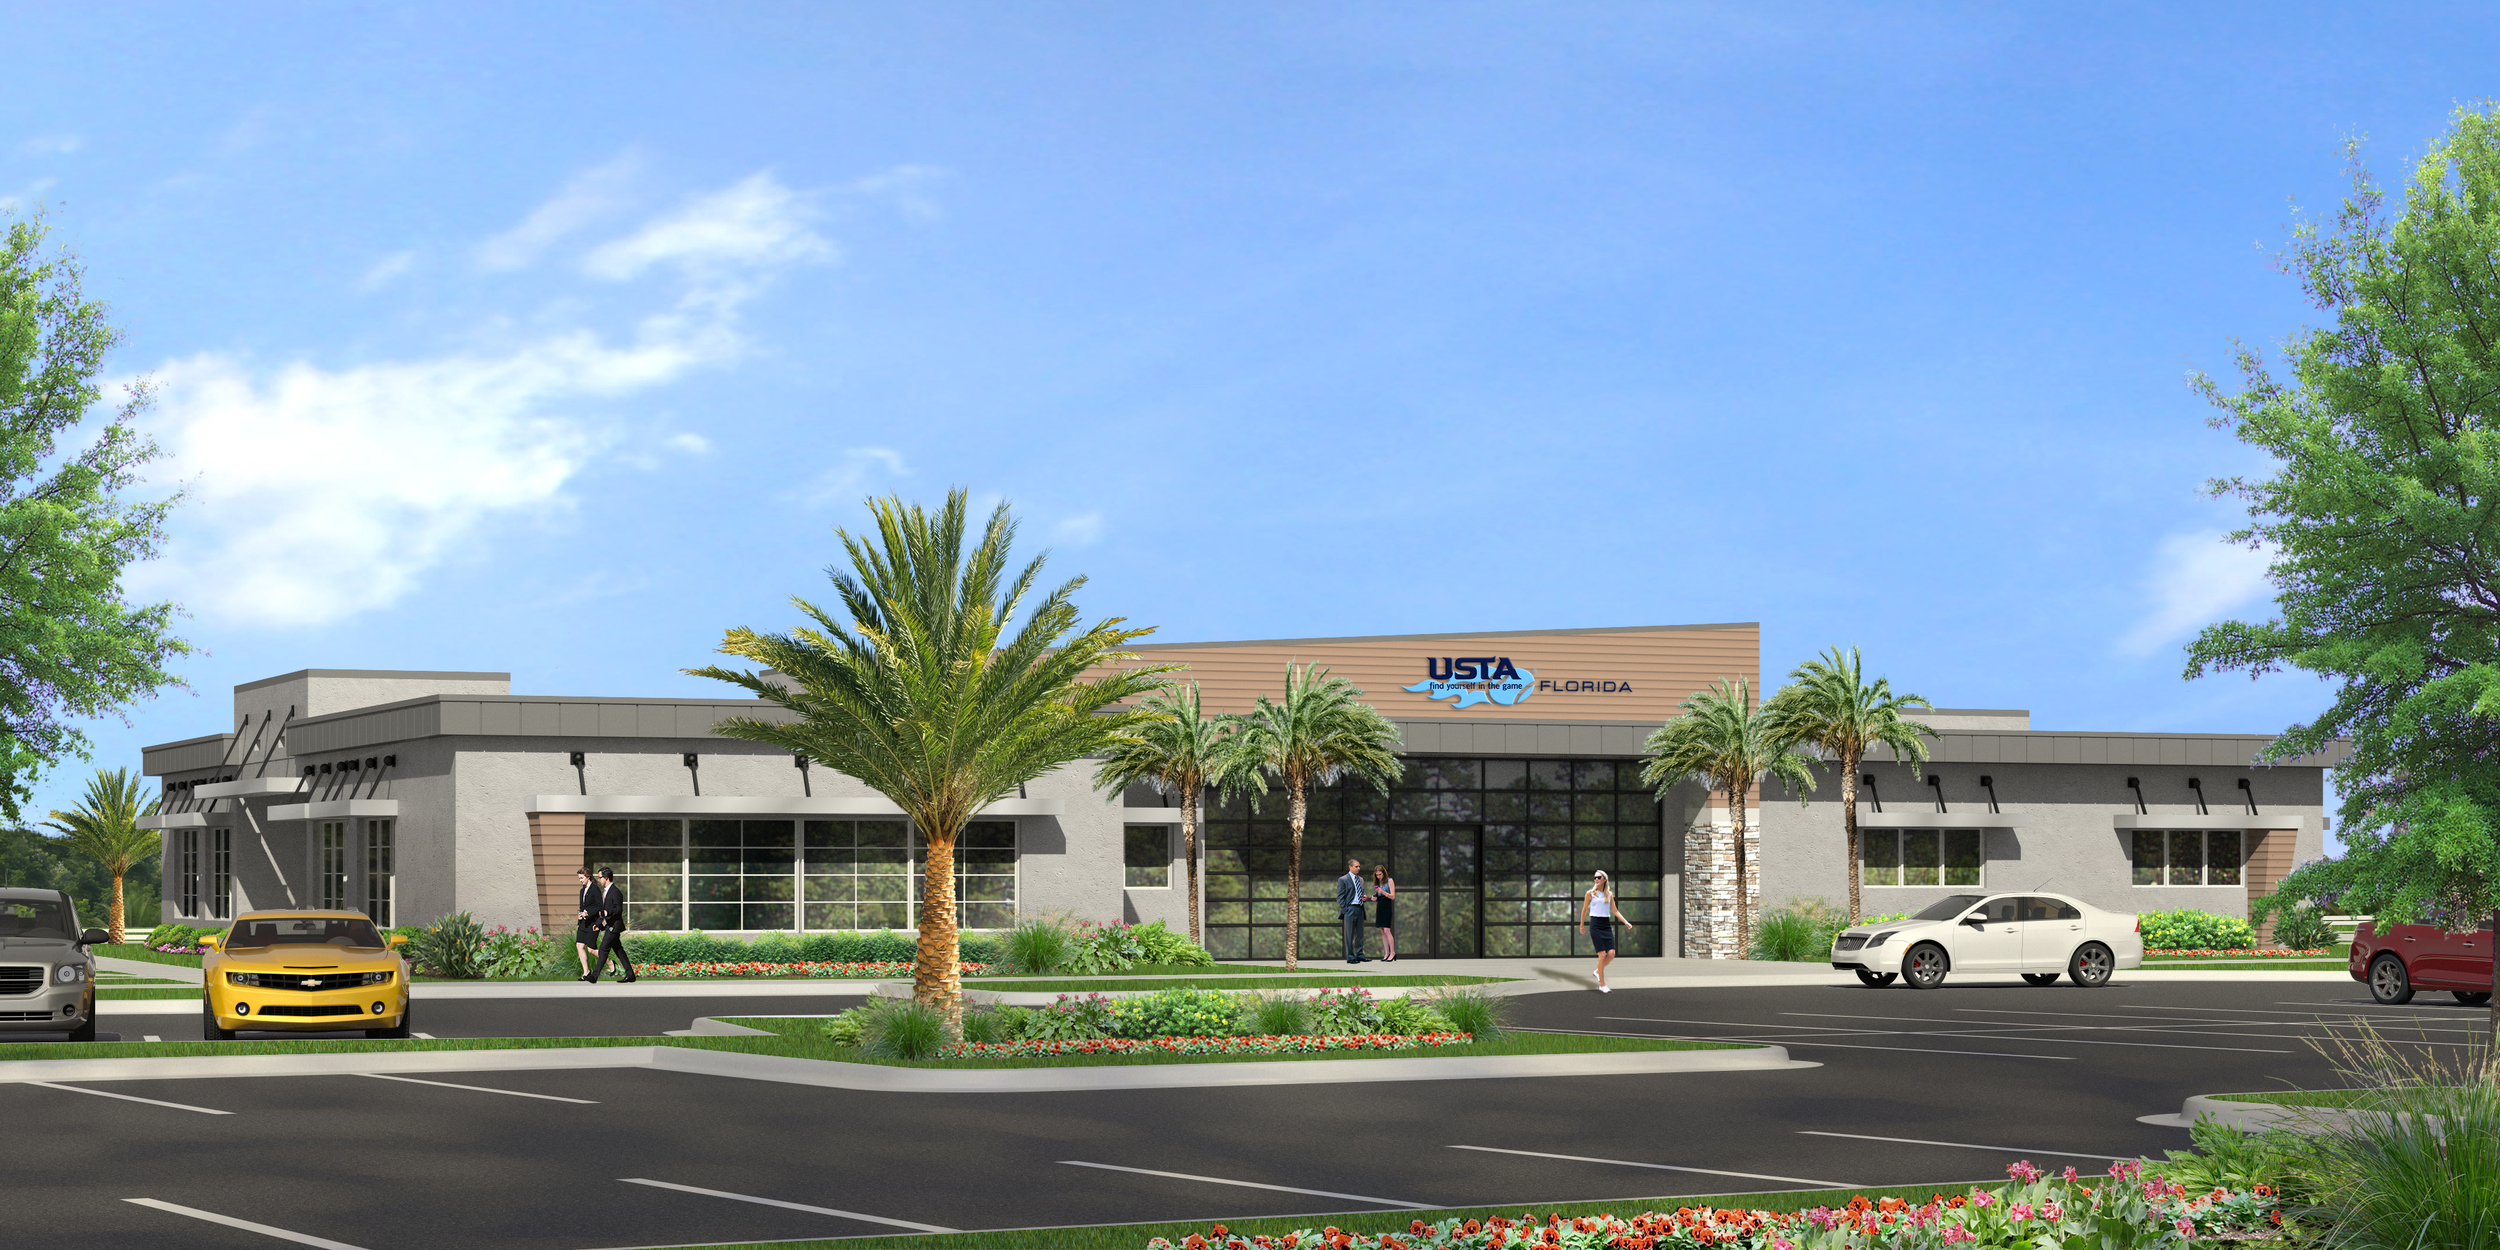 USTA-Florida Section Headquarters in the Lake Nona Sports & Performance District